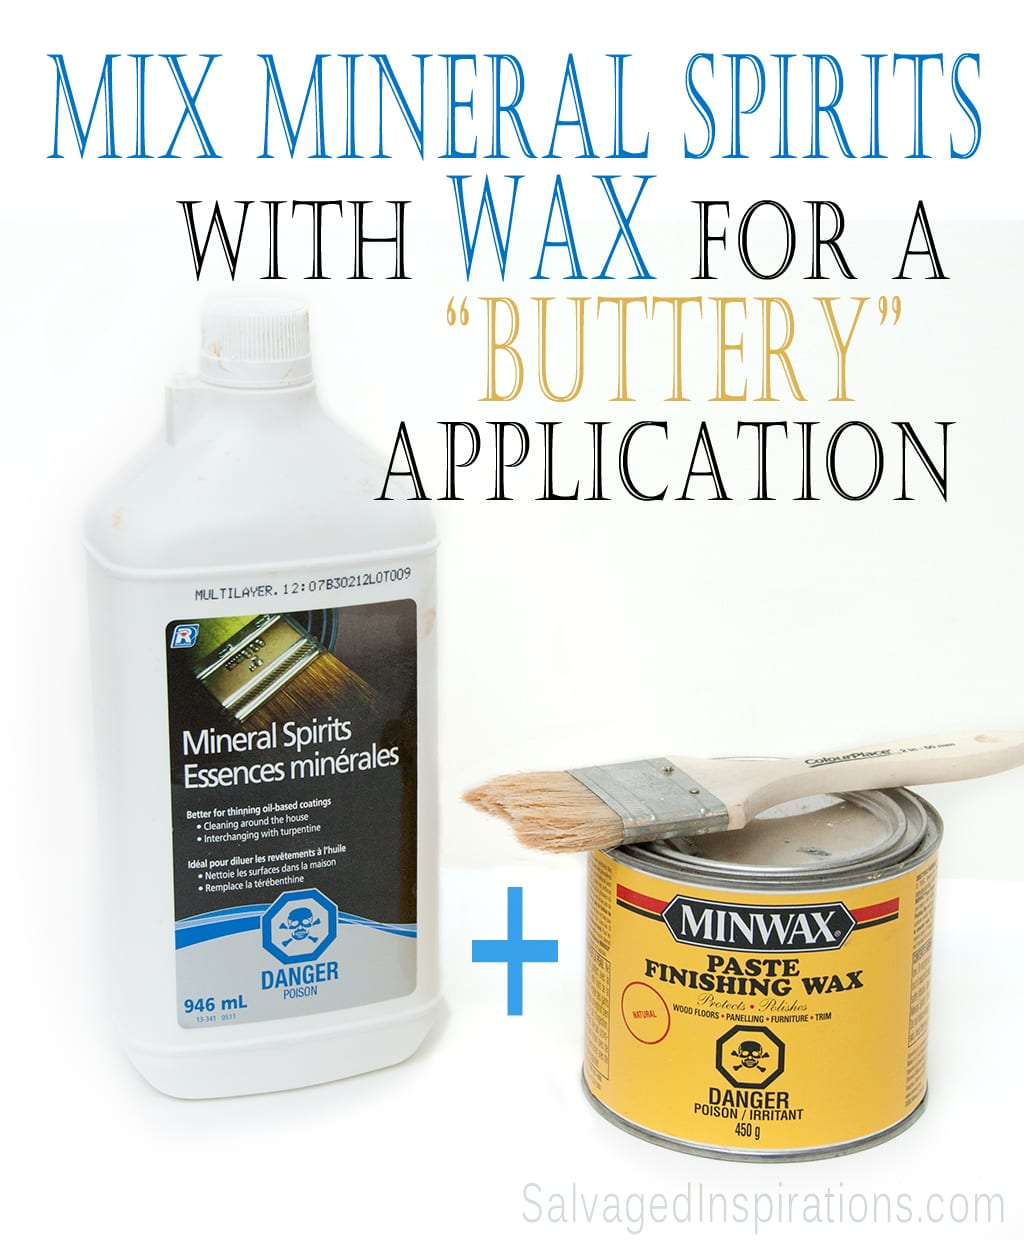 mineralspirits-with-wax-for-easy-application